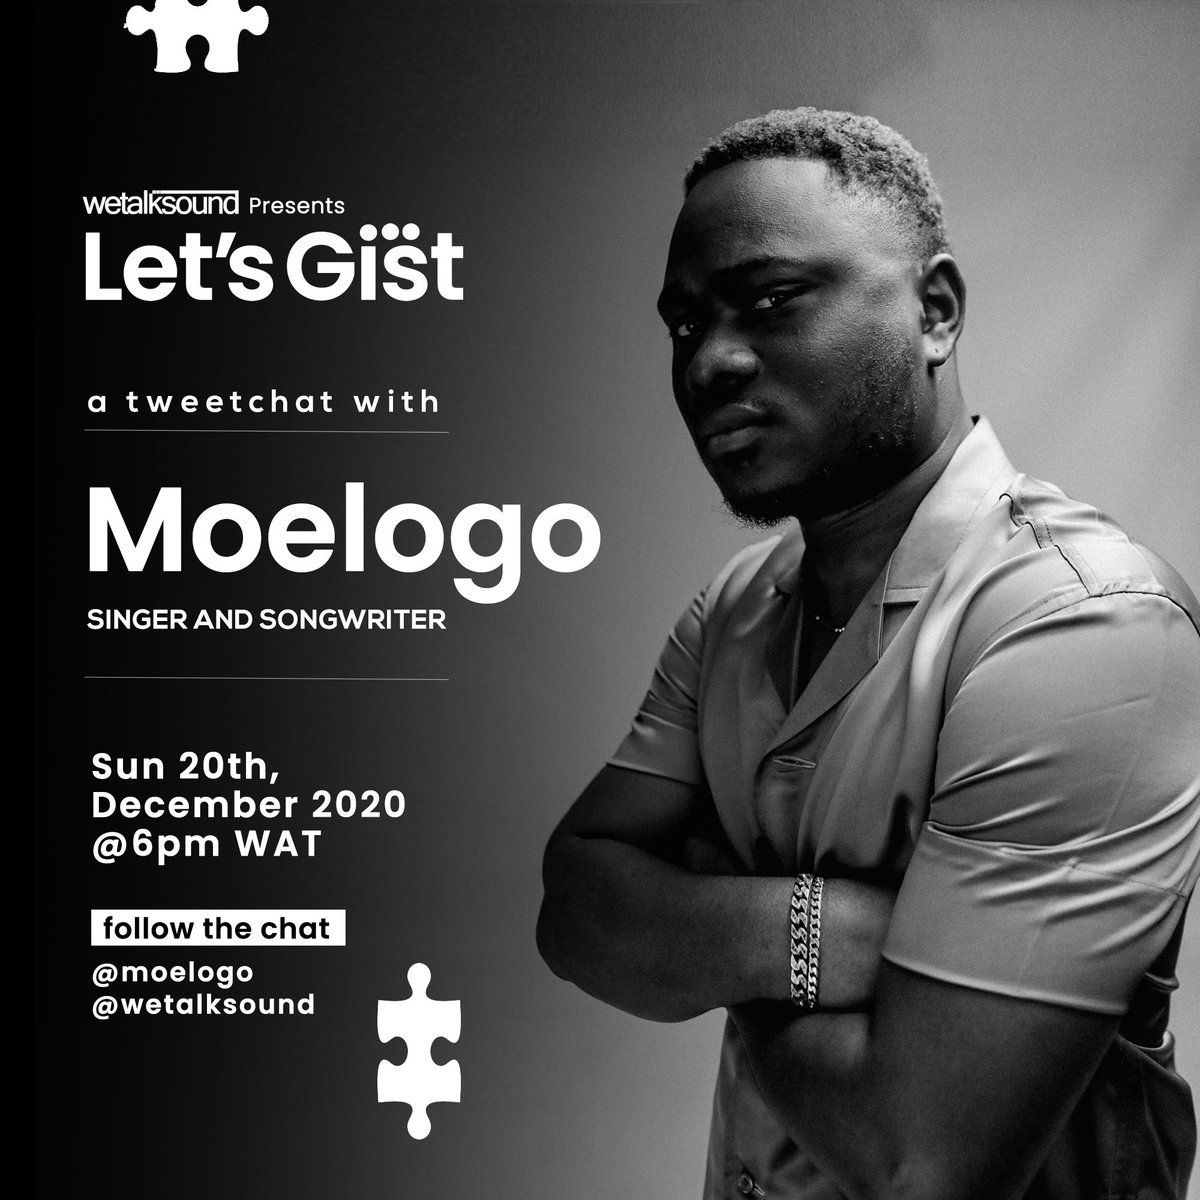 Let's gist: Myself, an EP by Moelogo.